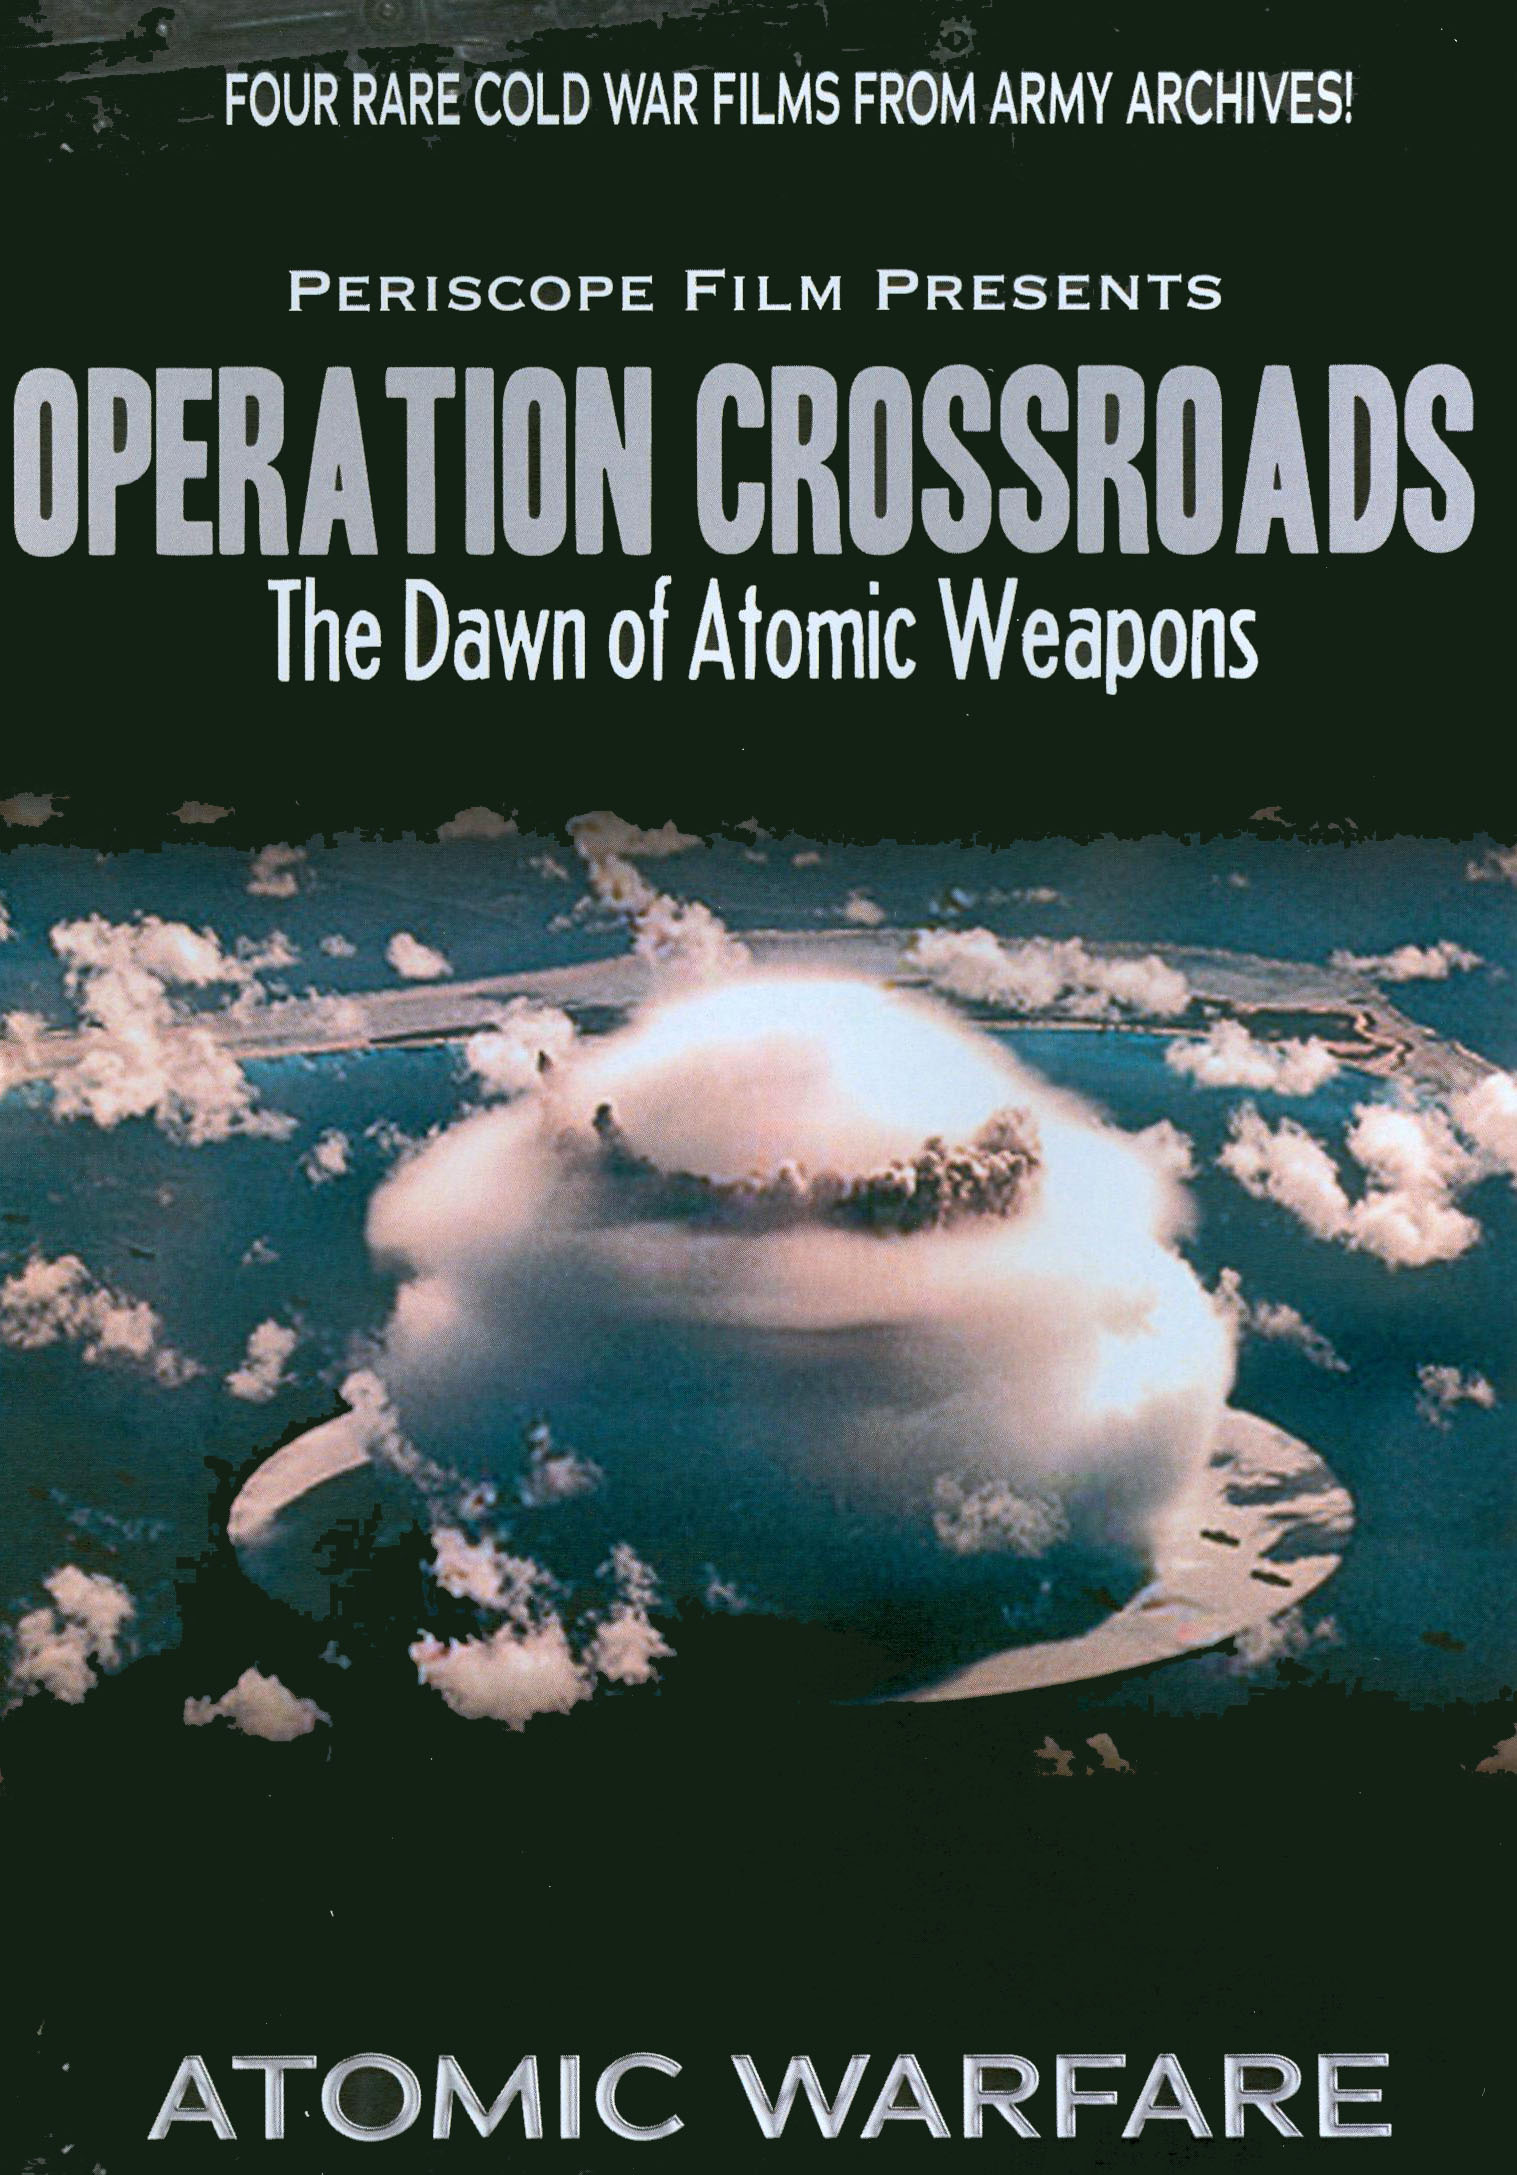 Operation Crossroads: The Dawn of the Atomic Weapons